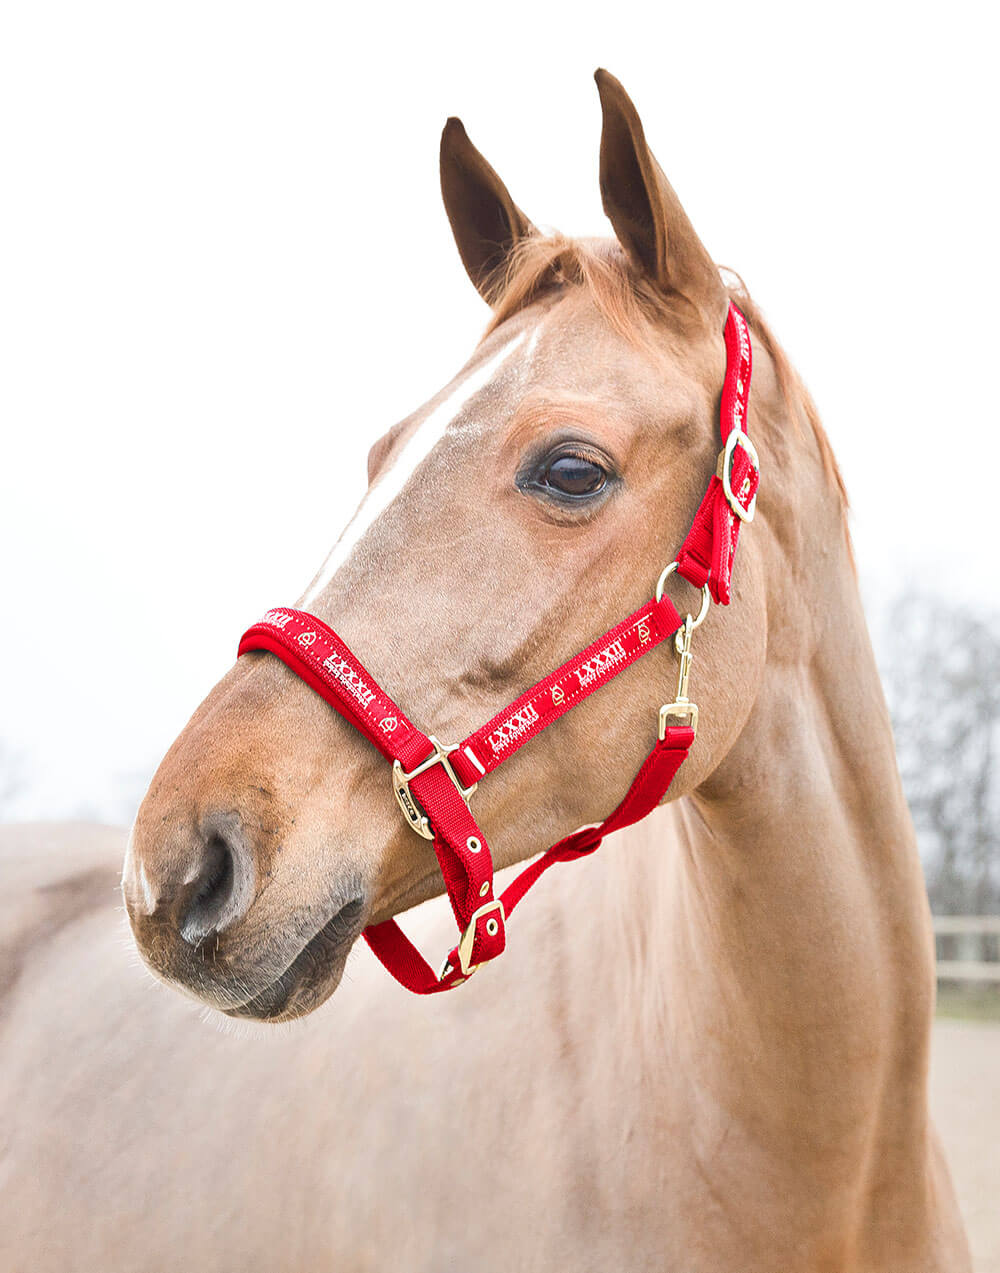 Strong adjustable and comfortable neoprene lined horse halter with strong buckles